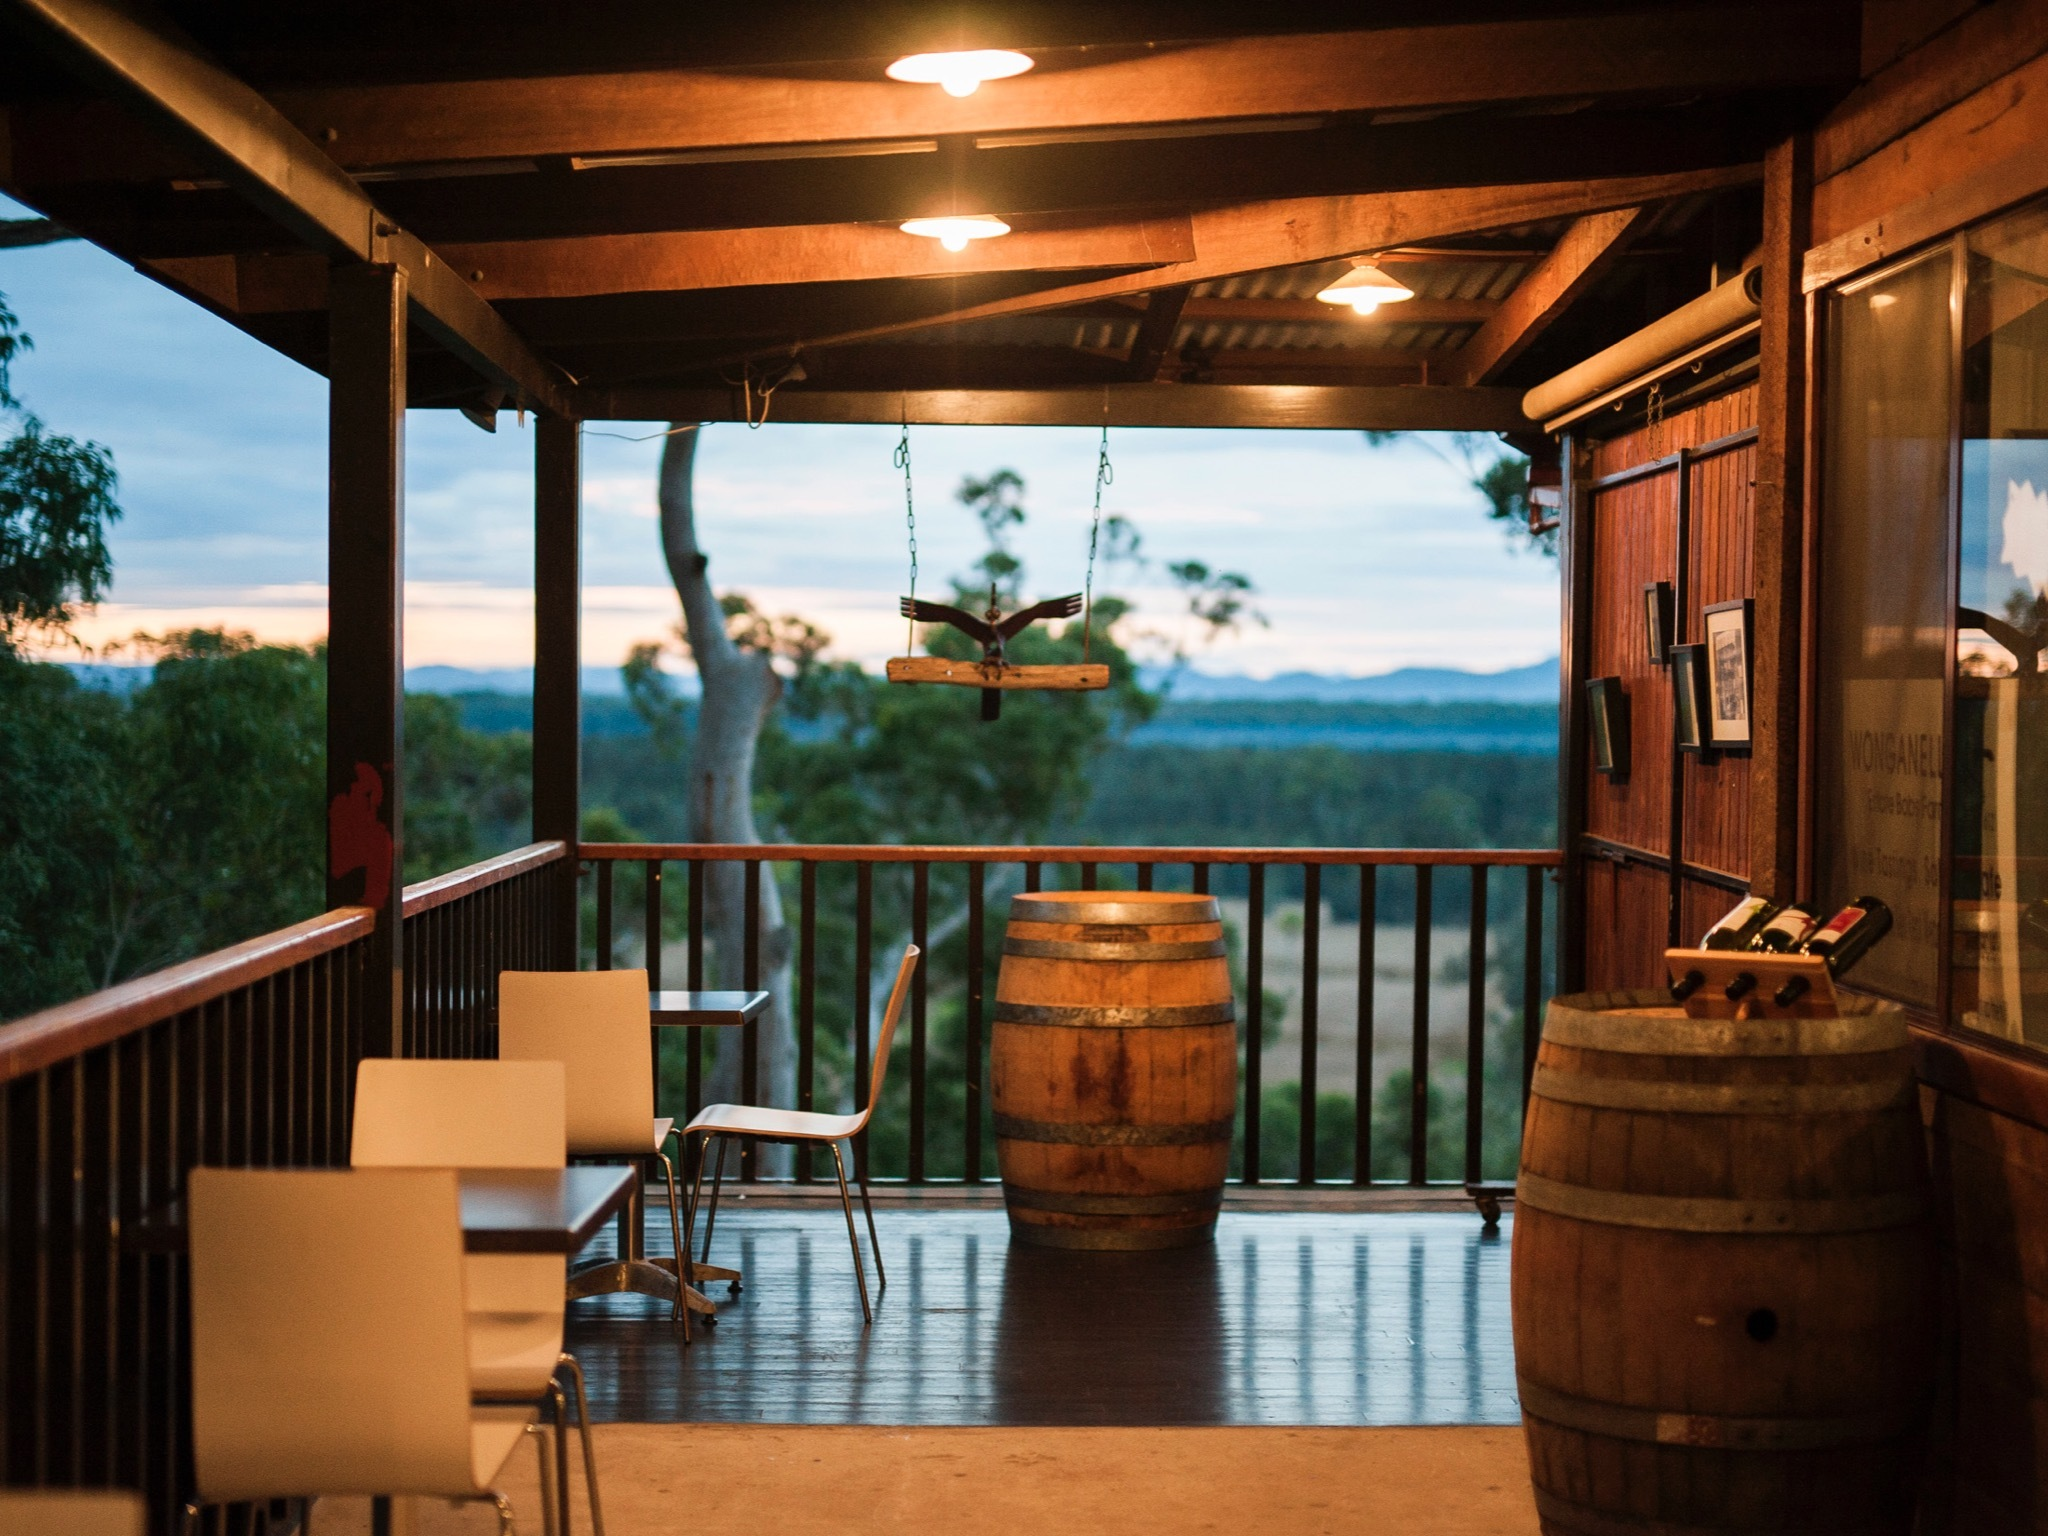 Photograph of terrace outside Wonganella Winery Cellar Door